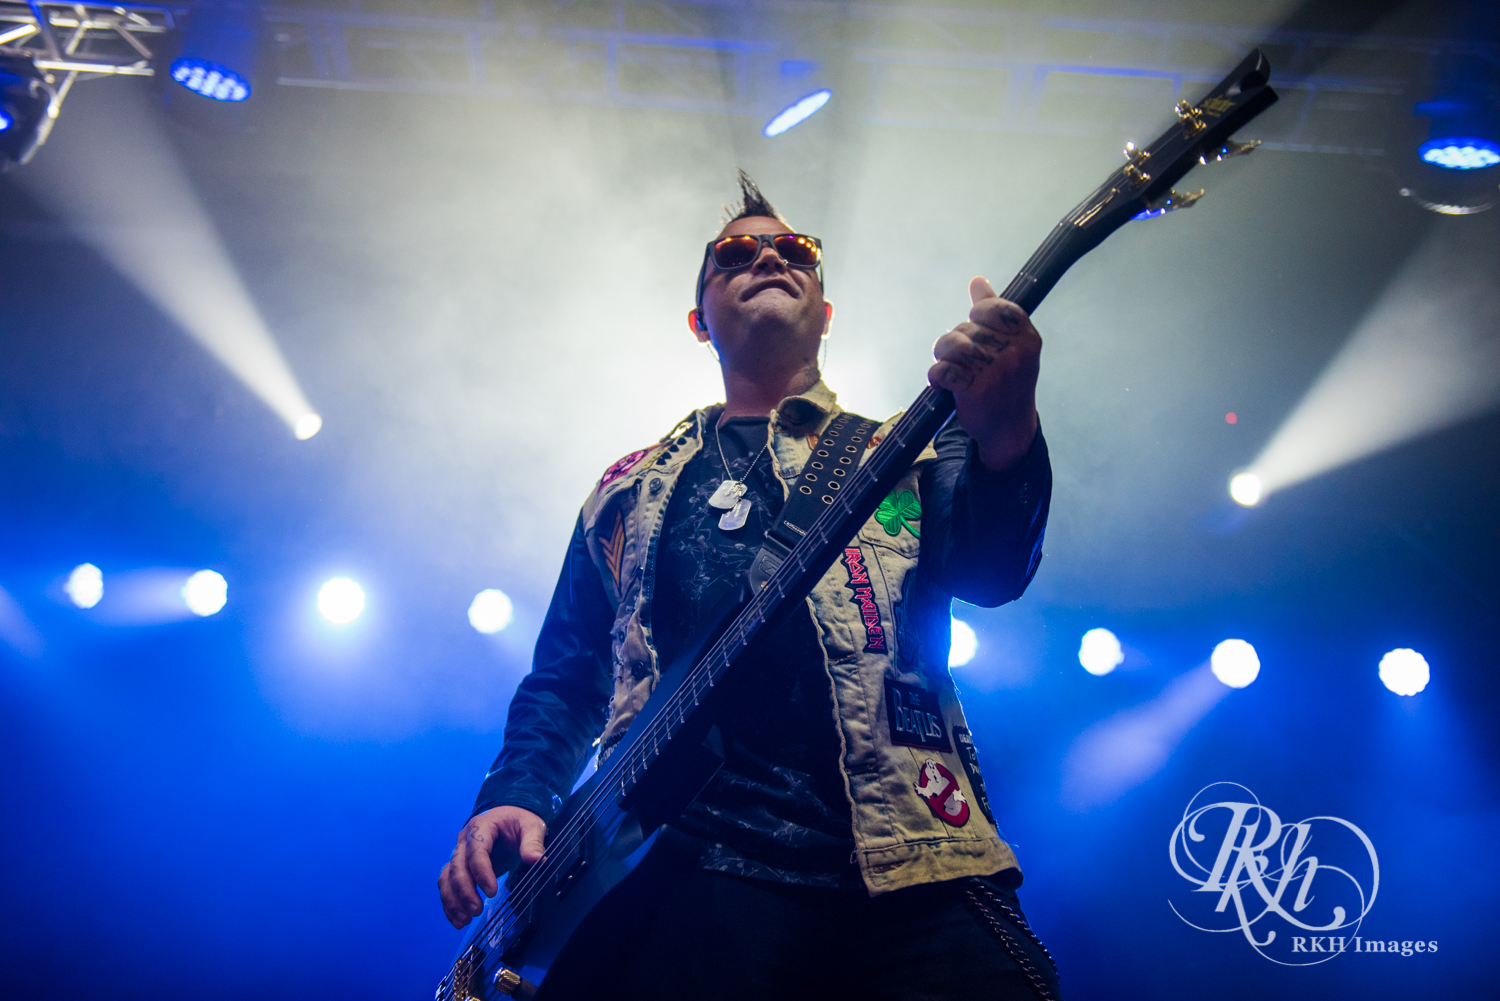 a7x rkh images (24 of 52).jpg